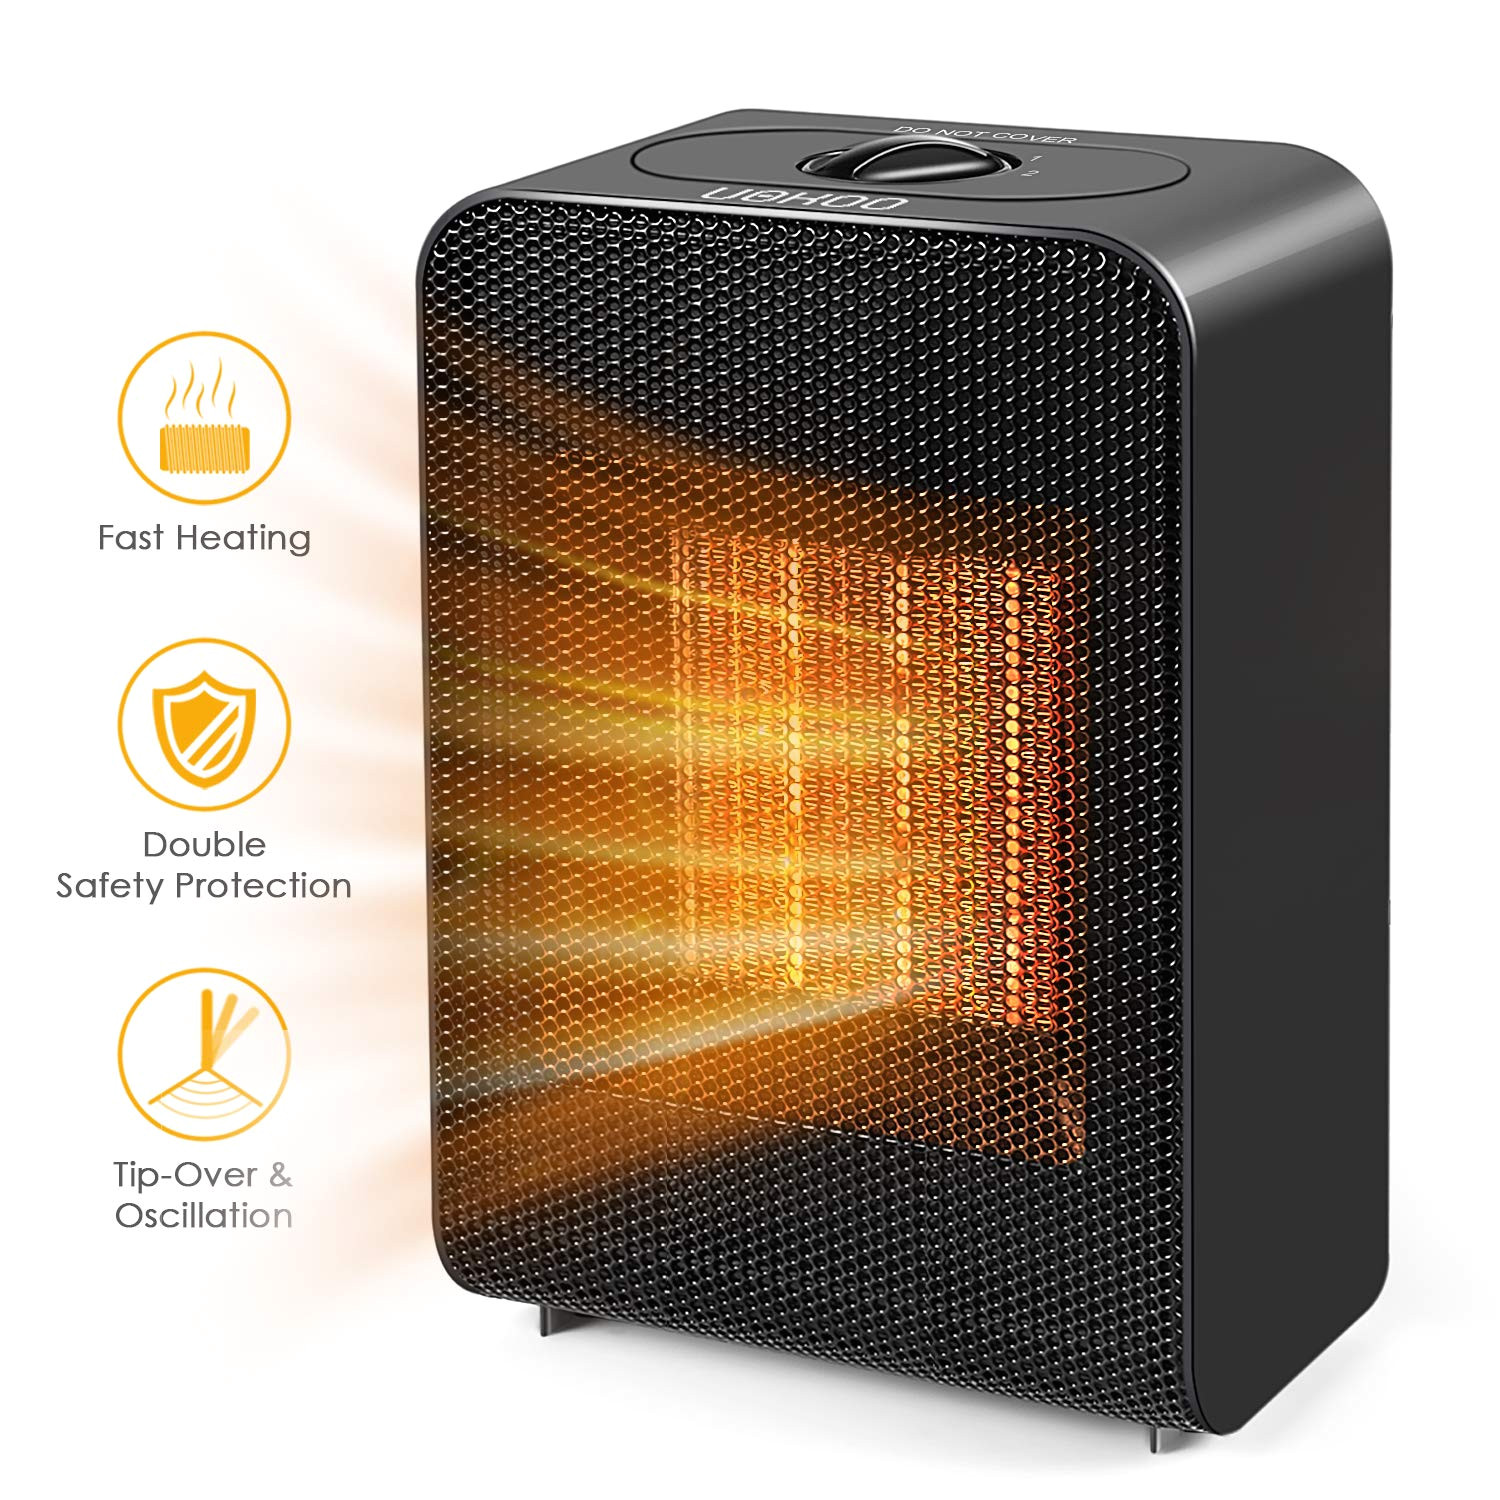 uokoo ceramic space heater portable fast heating electric heater fan indoor adjustable thermostat home bedroom